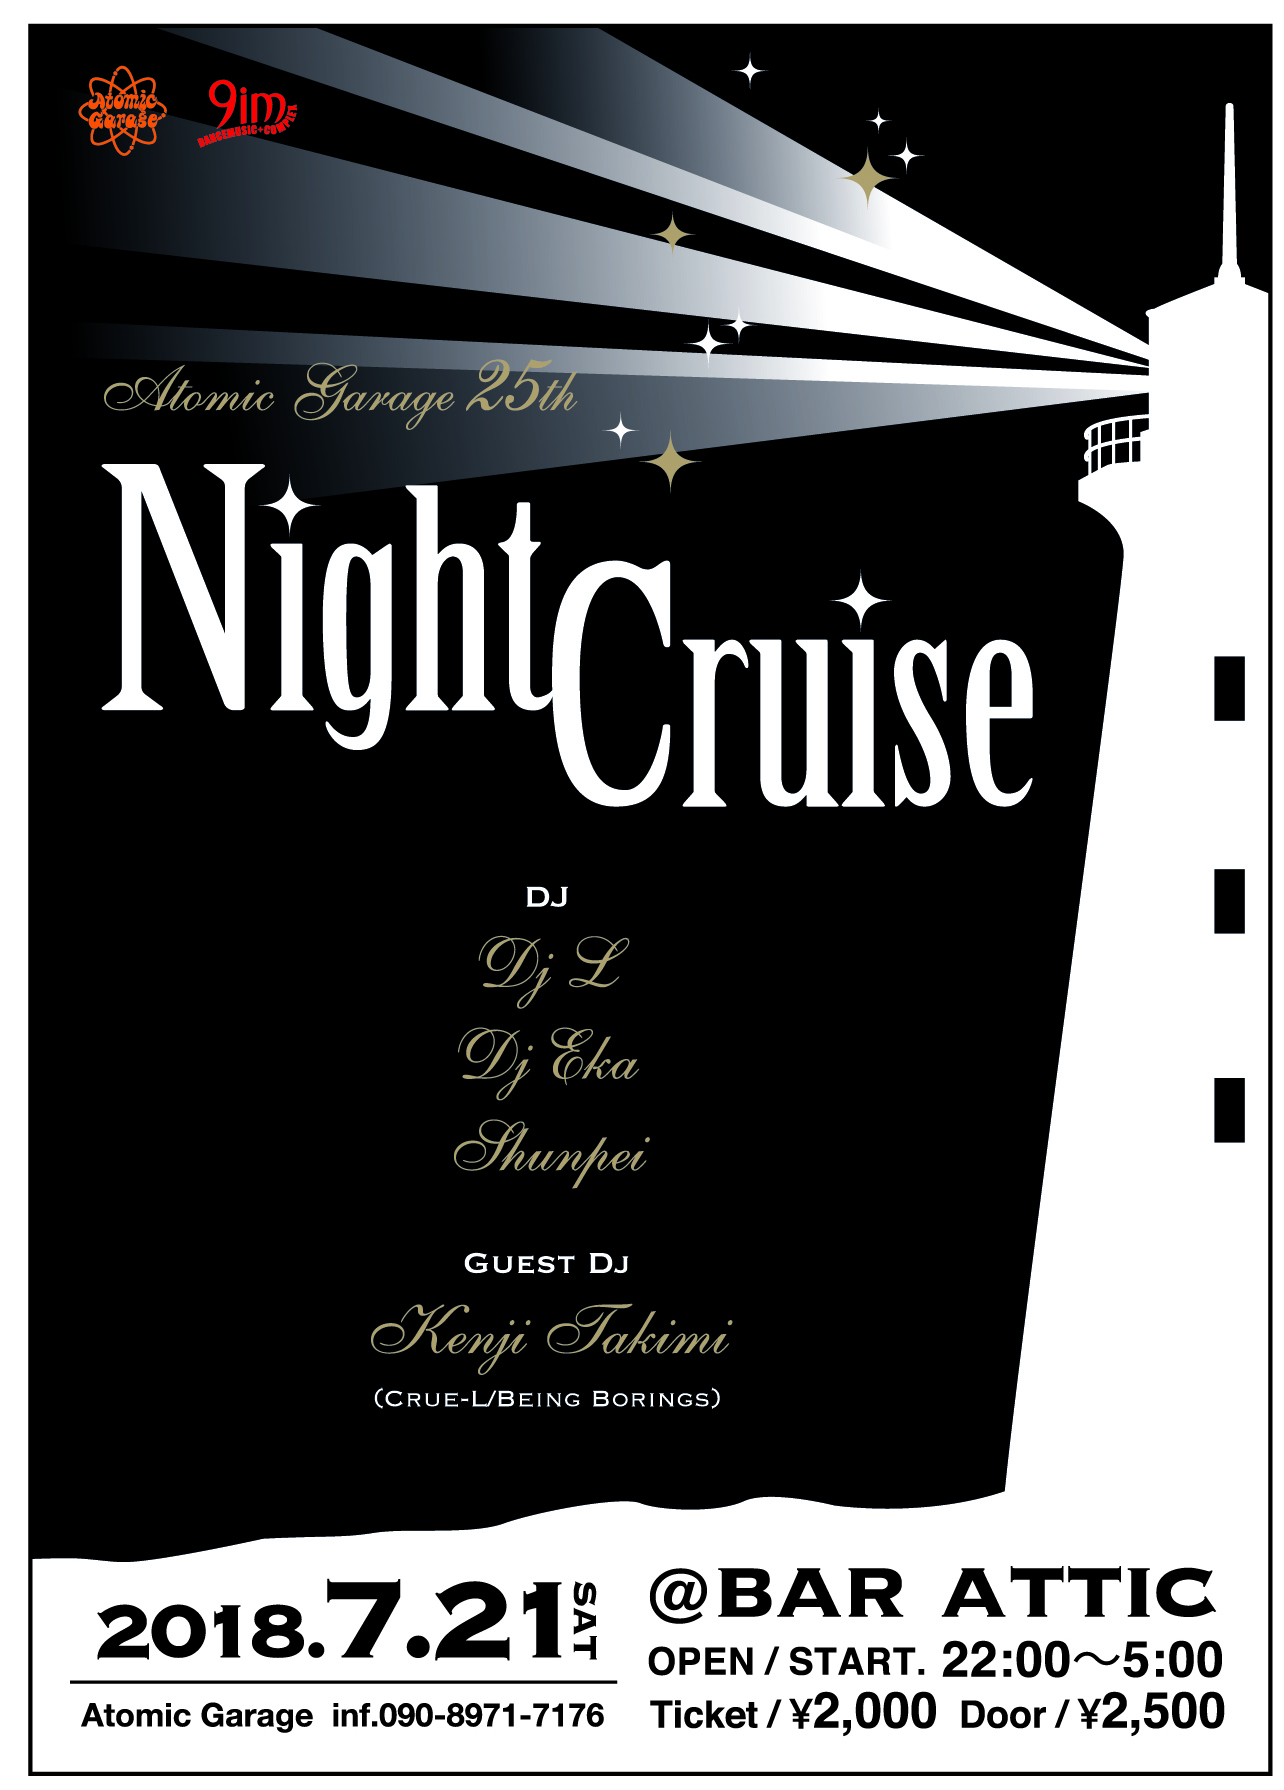 『Night Cruise』 @ BAR ATTIC 2018.7.21(sat) open / start 22:00-5:00 GUEST DJ  : Kenji Takimi (Crue-L / Being Borings)<br> DJ :  L , Eka , Shunpei <br>info:Atomic Garage 090-8971-7176